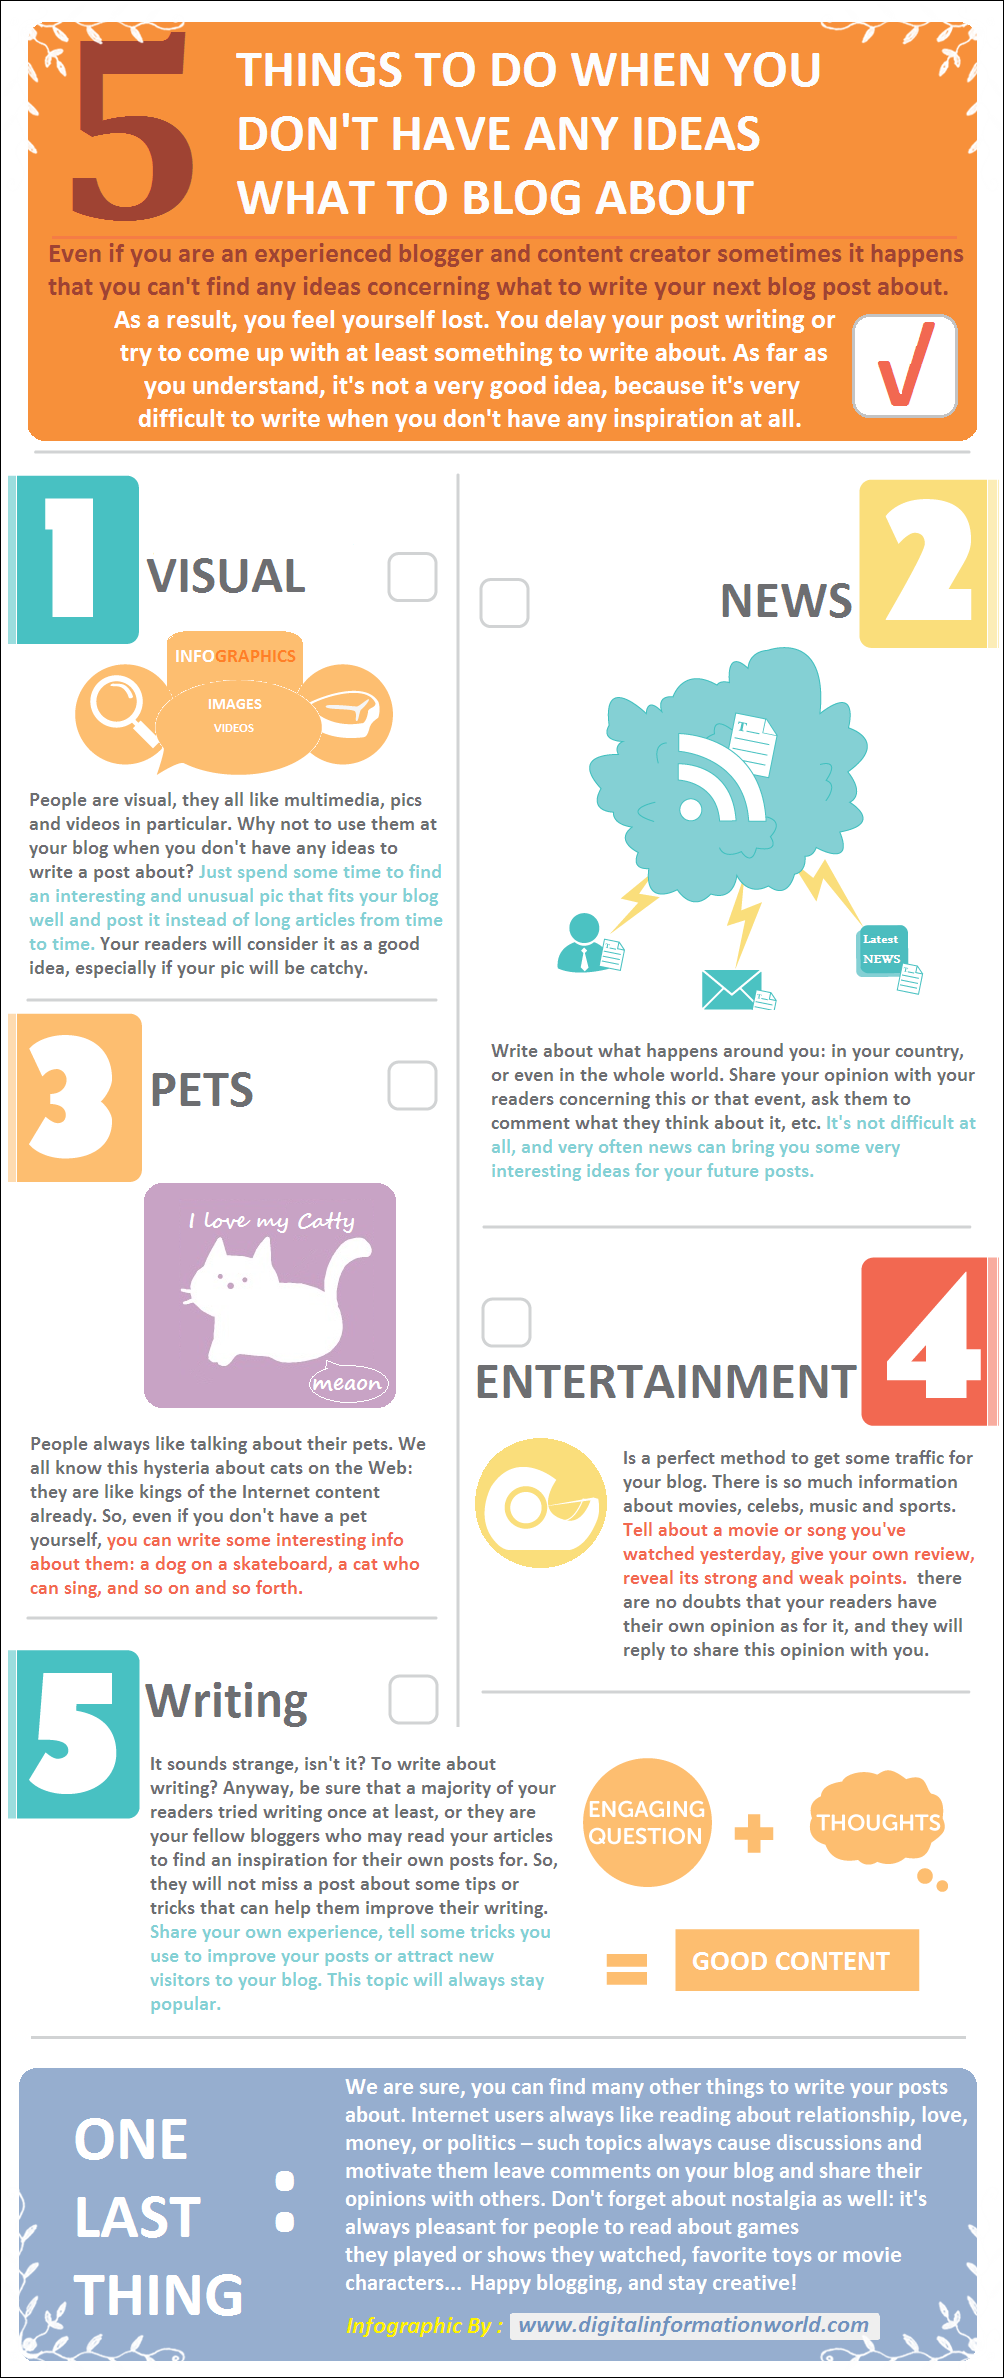 5 Interesting Things To Do When You Don't Have Any Ideas What To Blog About : infographic